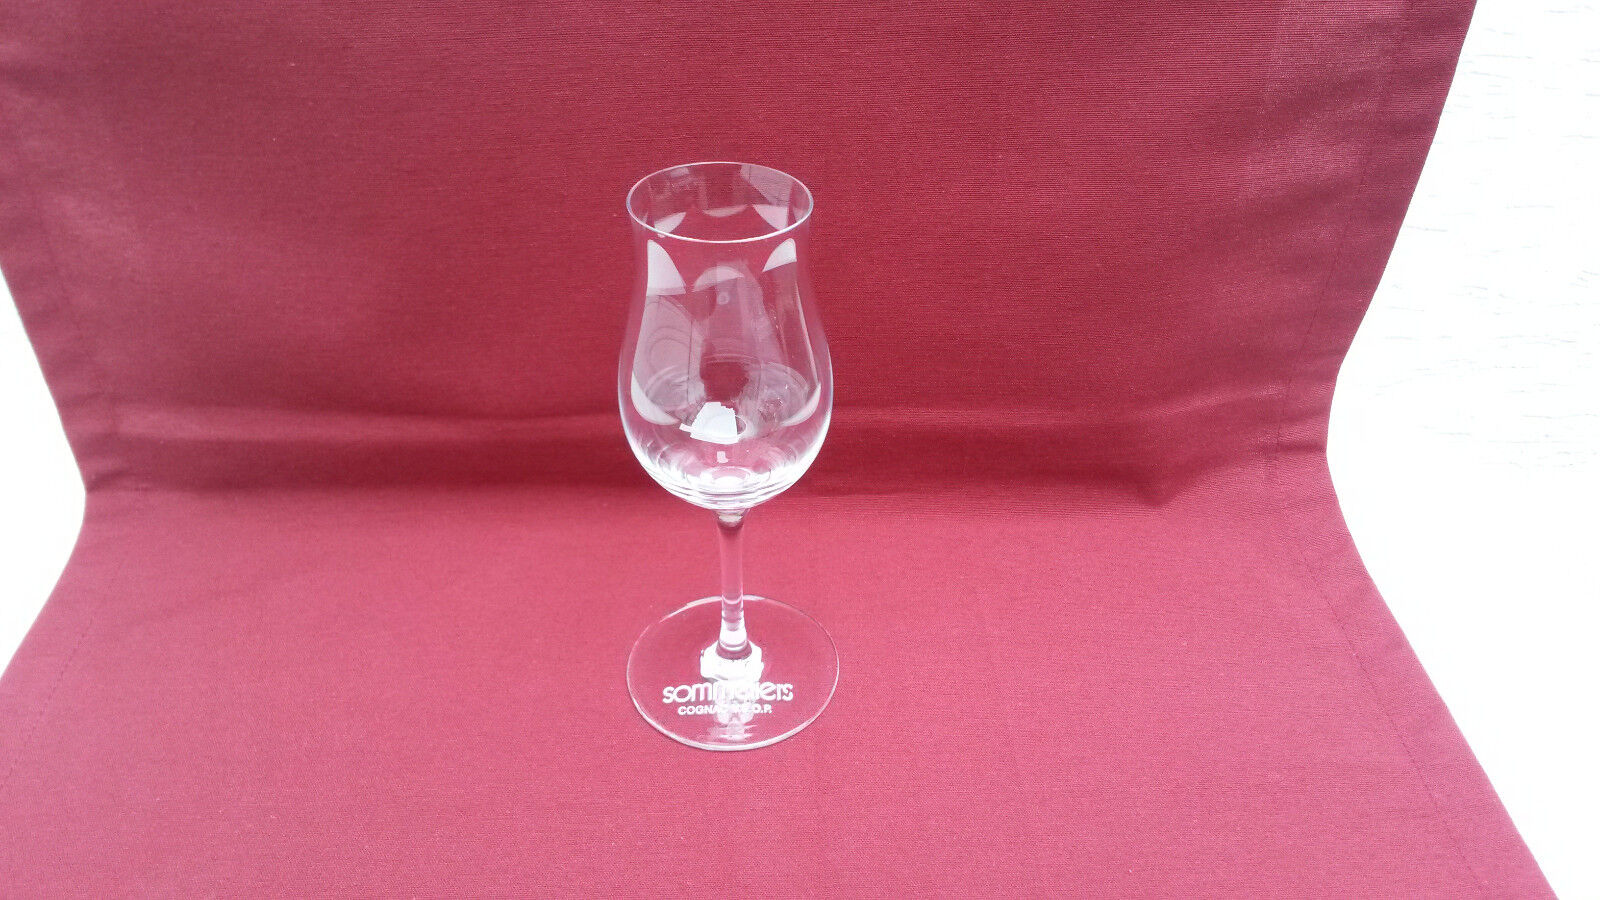 Riedel-Verre-Verre sommeliers Cognac V.S.O.P. 0,16 L 4400 71 - Neuf